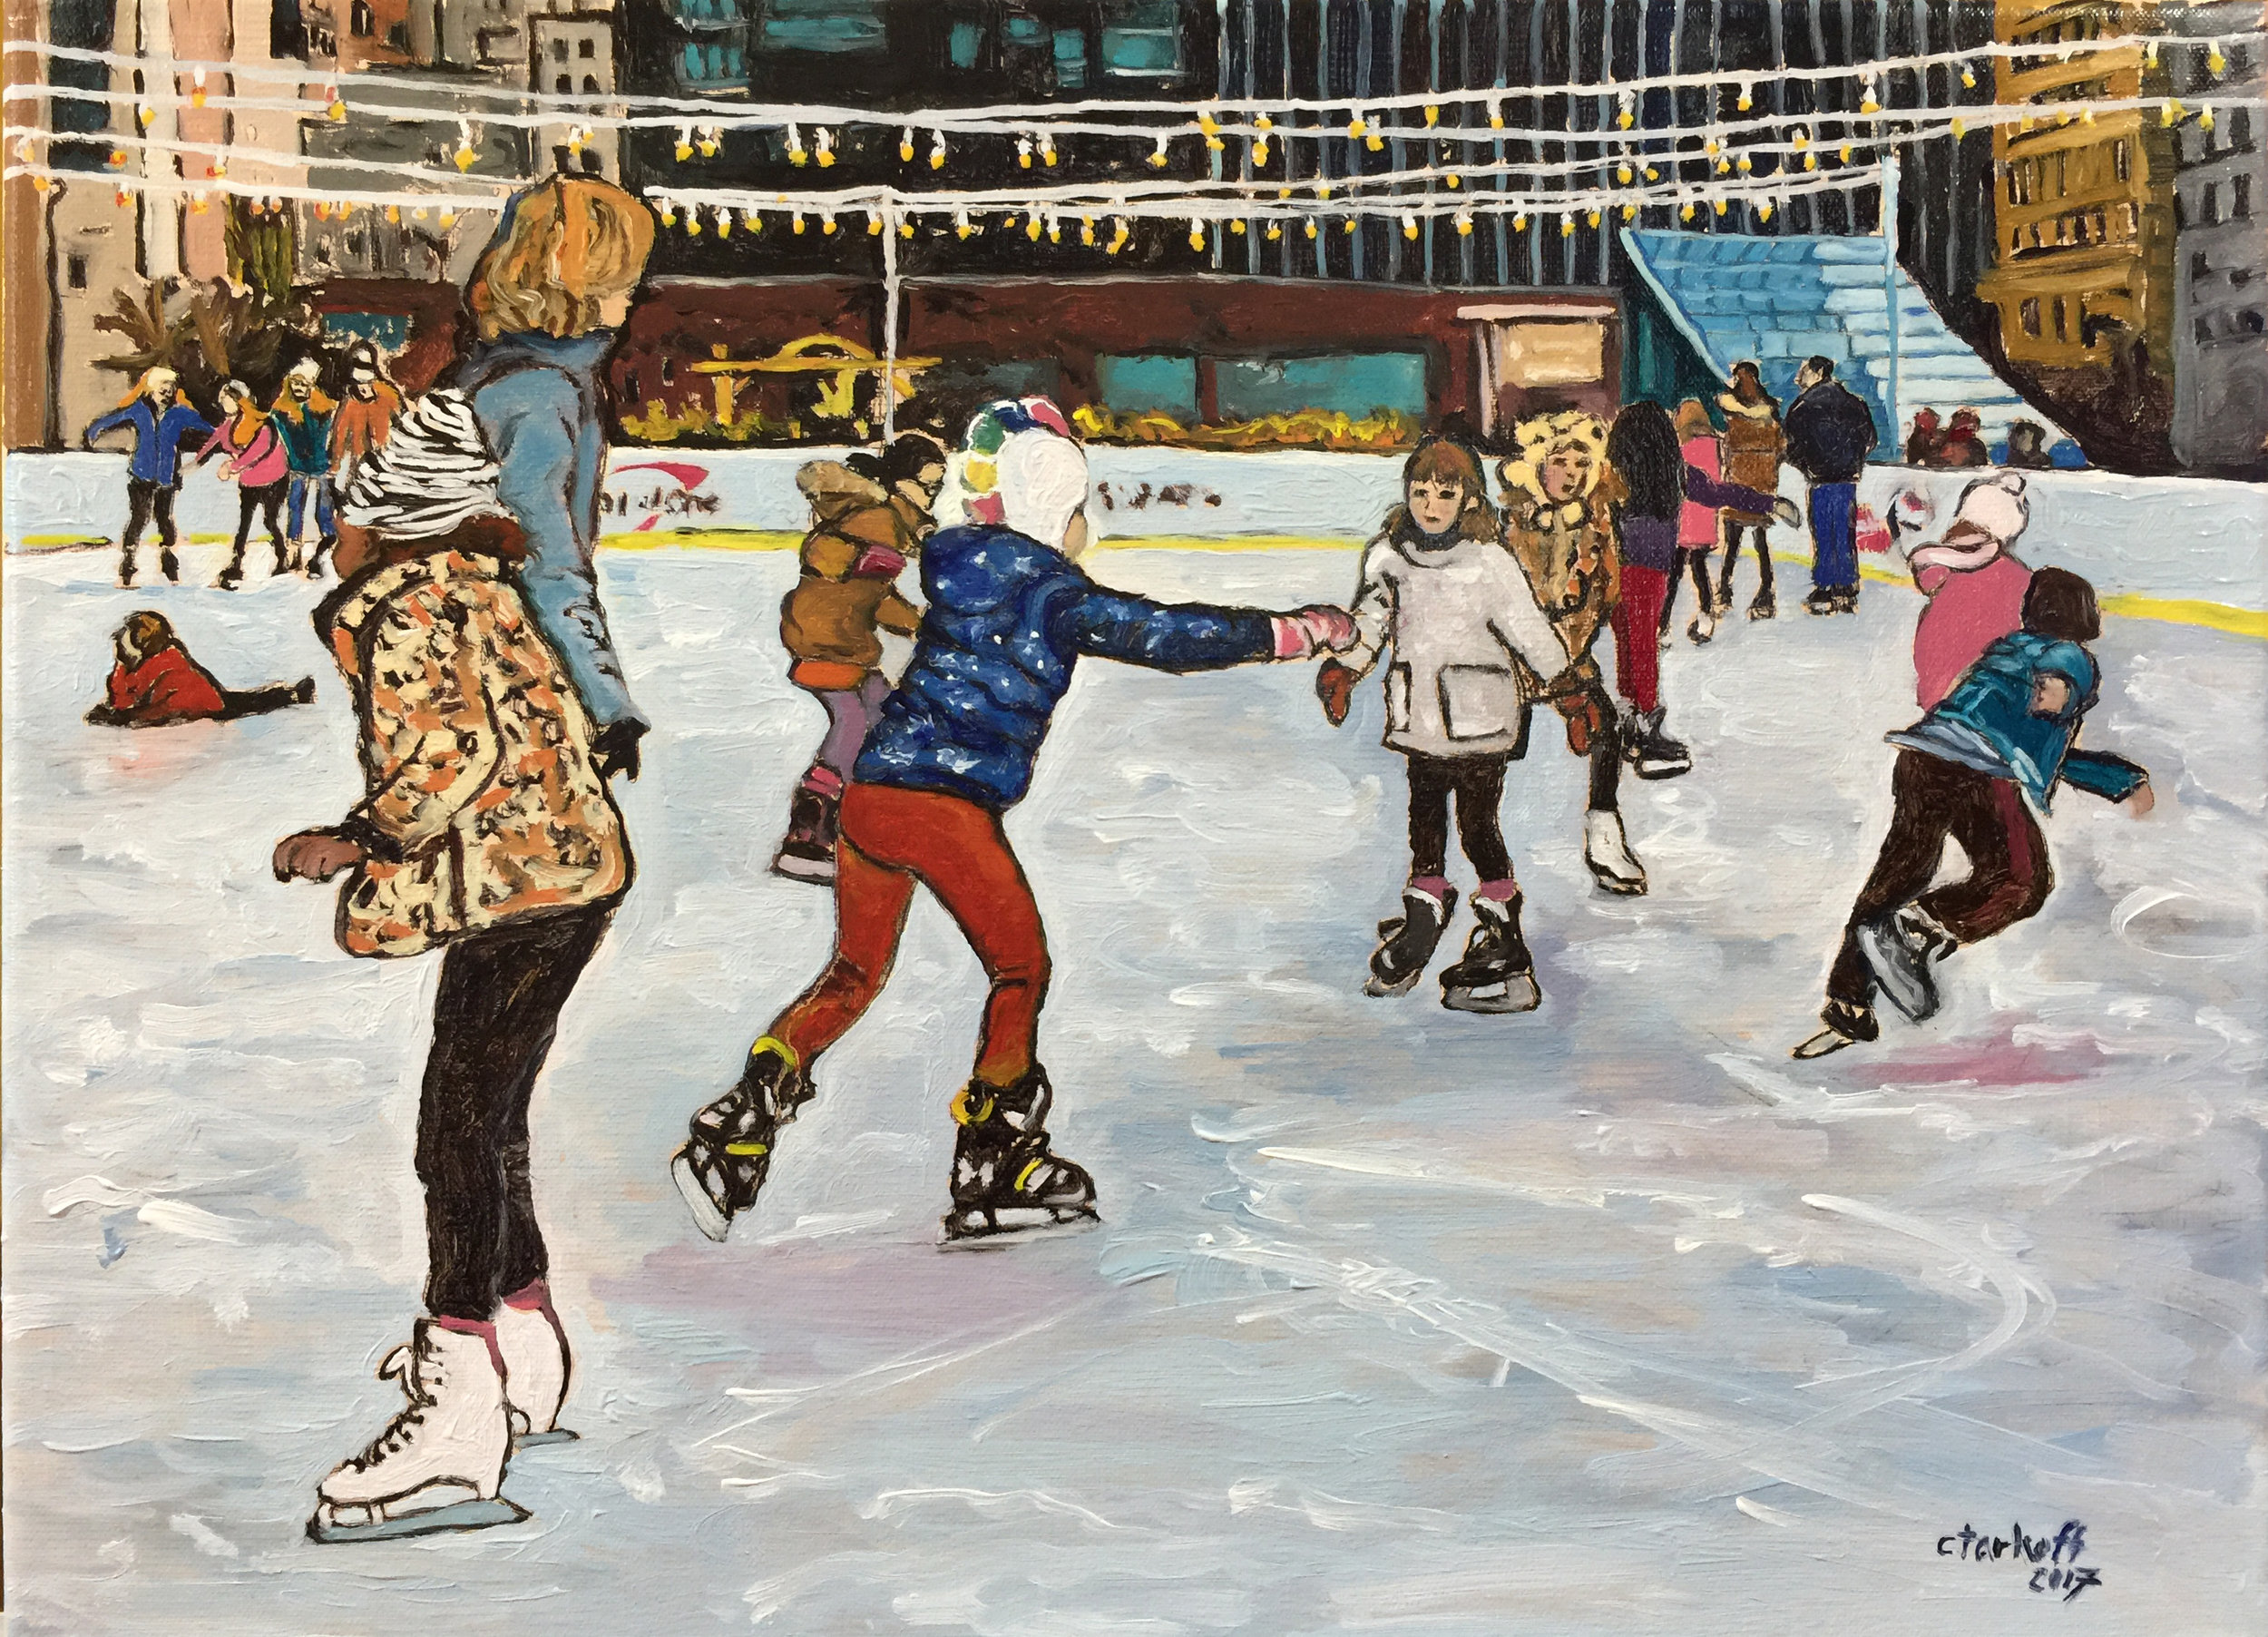 """Iceskating in Dilworth Park on a Sunday Afternoon."" Oil on stretched Canvas. 12x16. Framed, wired, and ready to hang in your home or office!    Winter in July Sale Price is $288.    Regular Price: $576.    Contact me if you are interested."